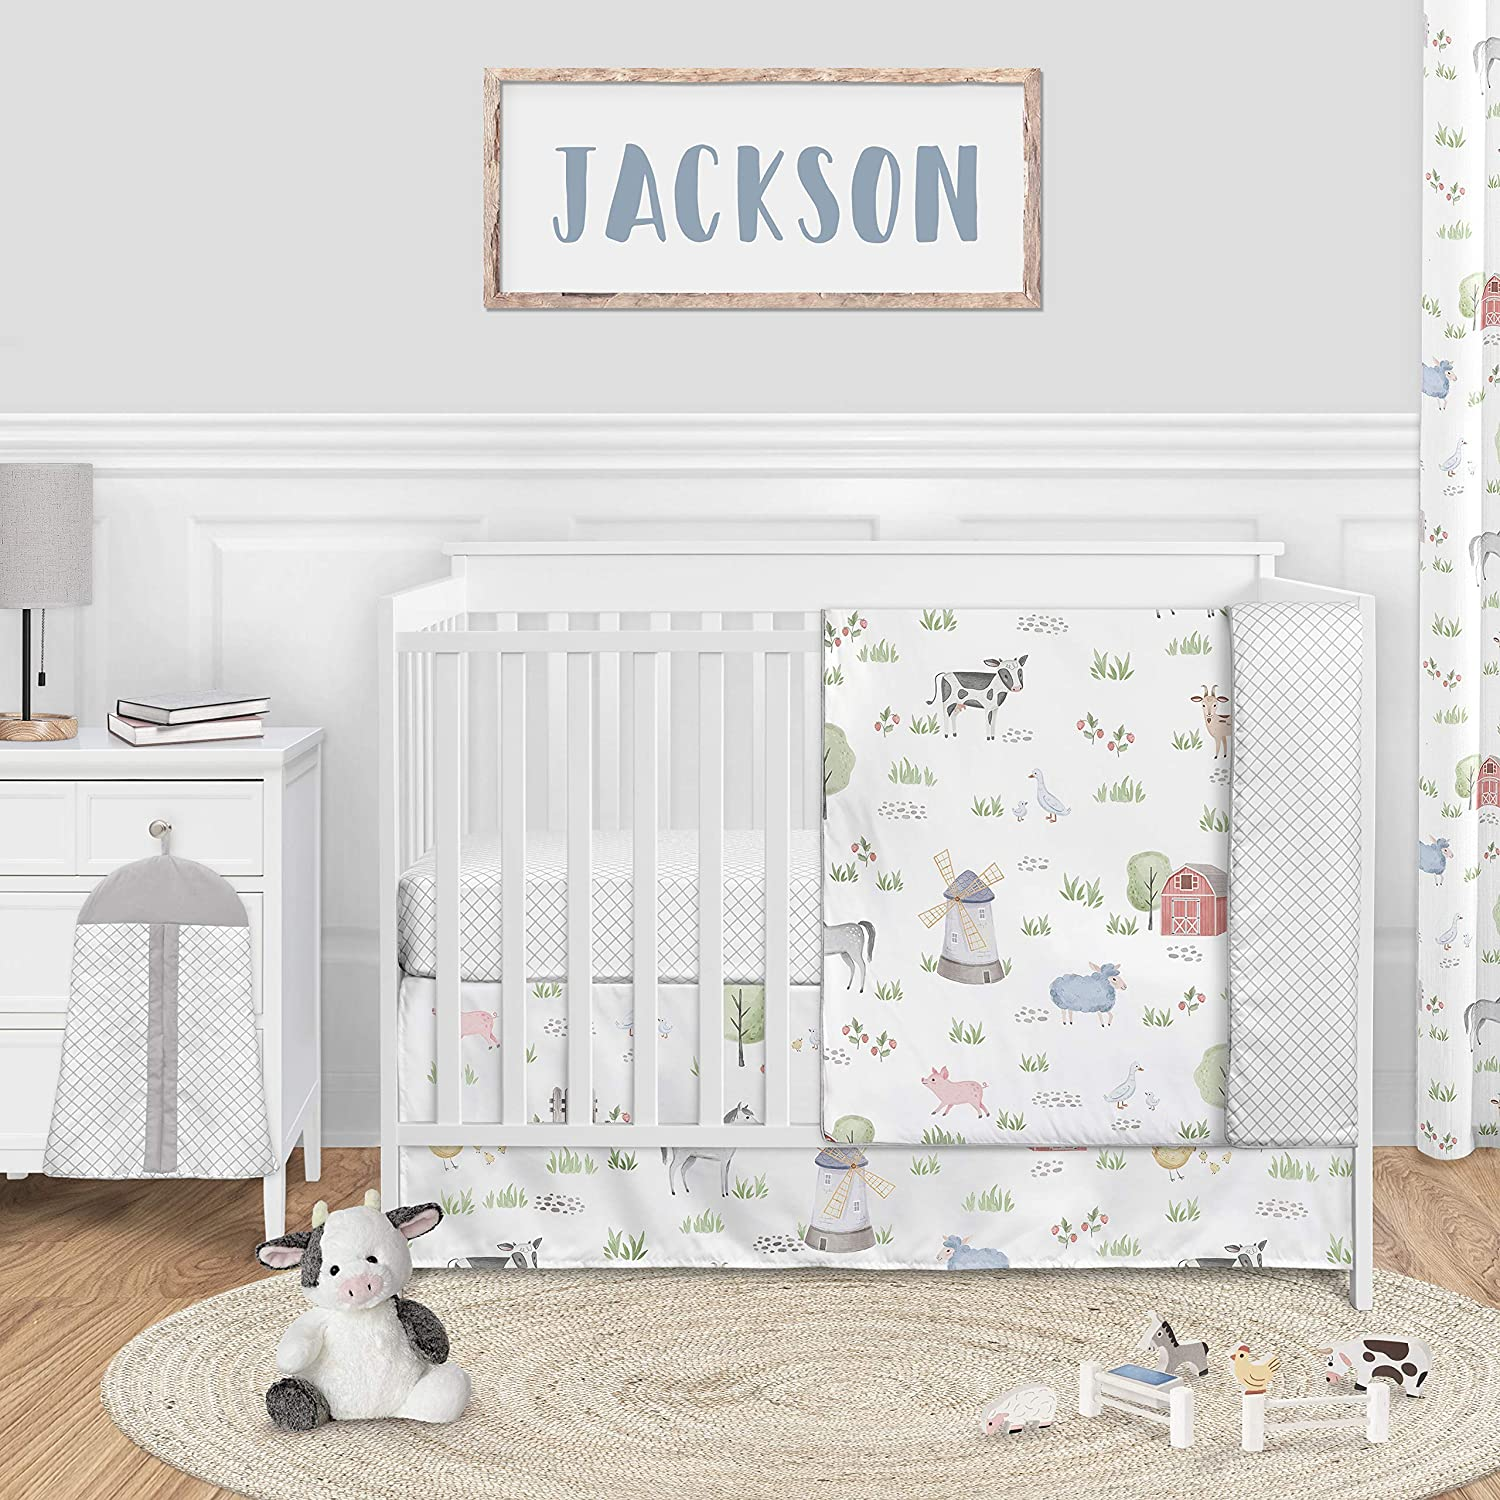 Sweet Jojo Designs Farm Animals Baby Boy or Girl Nursery Crib Bedding Set - 4 Pieces - Watercolor Farmhouse Lattice Horse Cow Sheep Pig